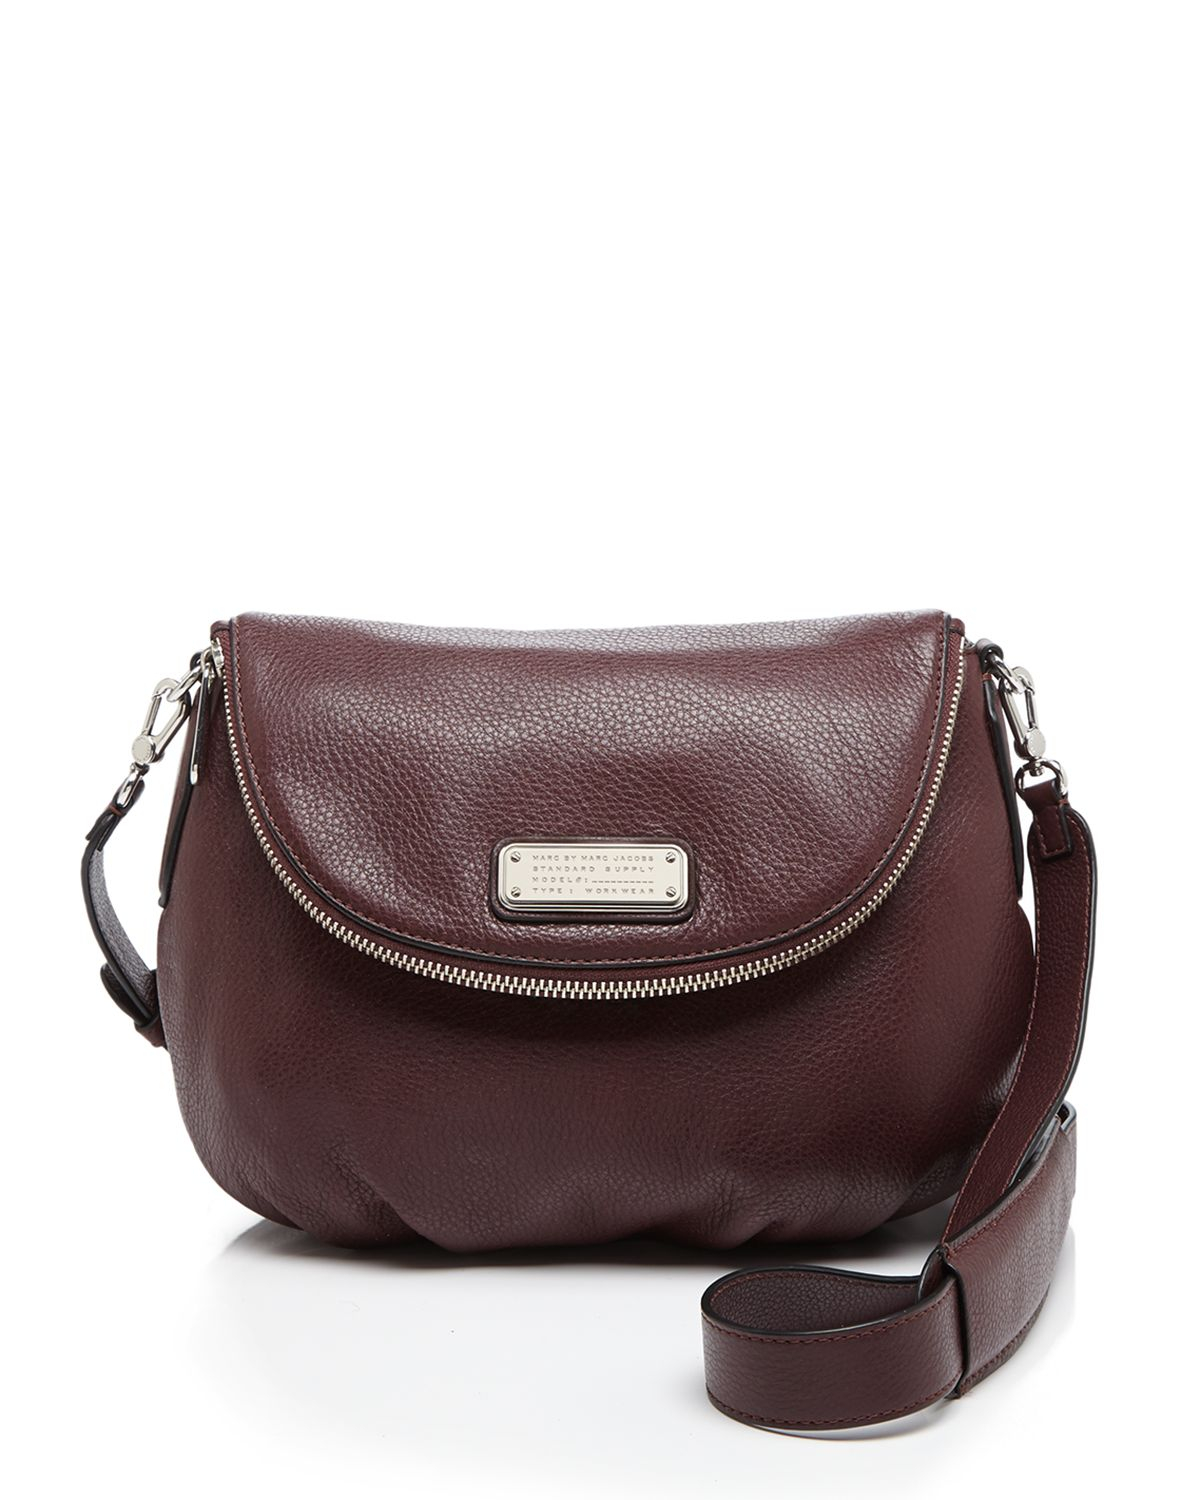 ebce563320 Gallery. Previously sold at: Bloomingdale's · Women's Marc Jacobs Natasha